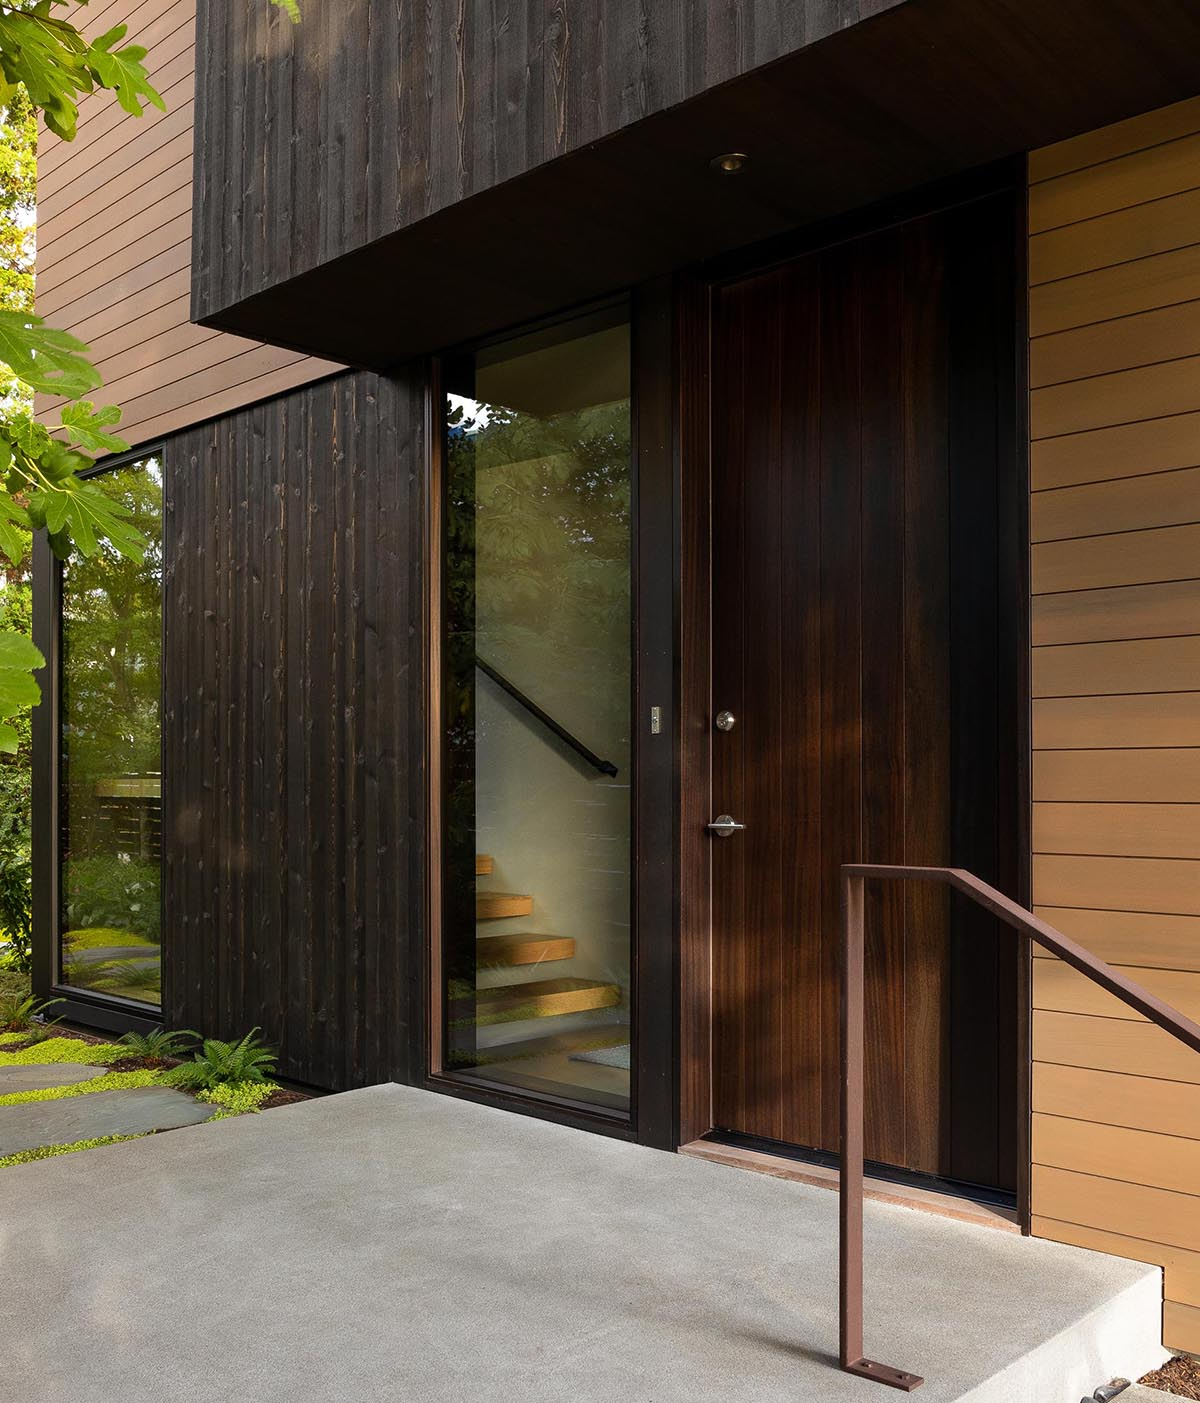 Black wood siding and a dark front door greet visitors to this modern home.